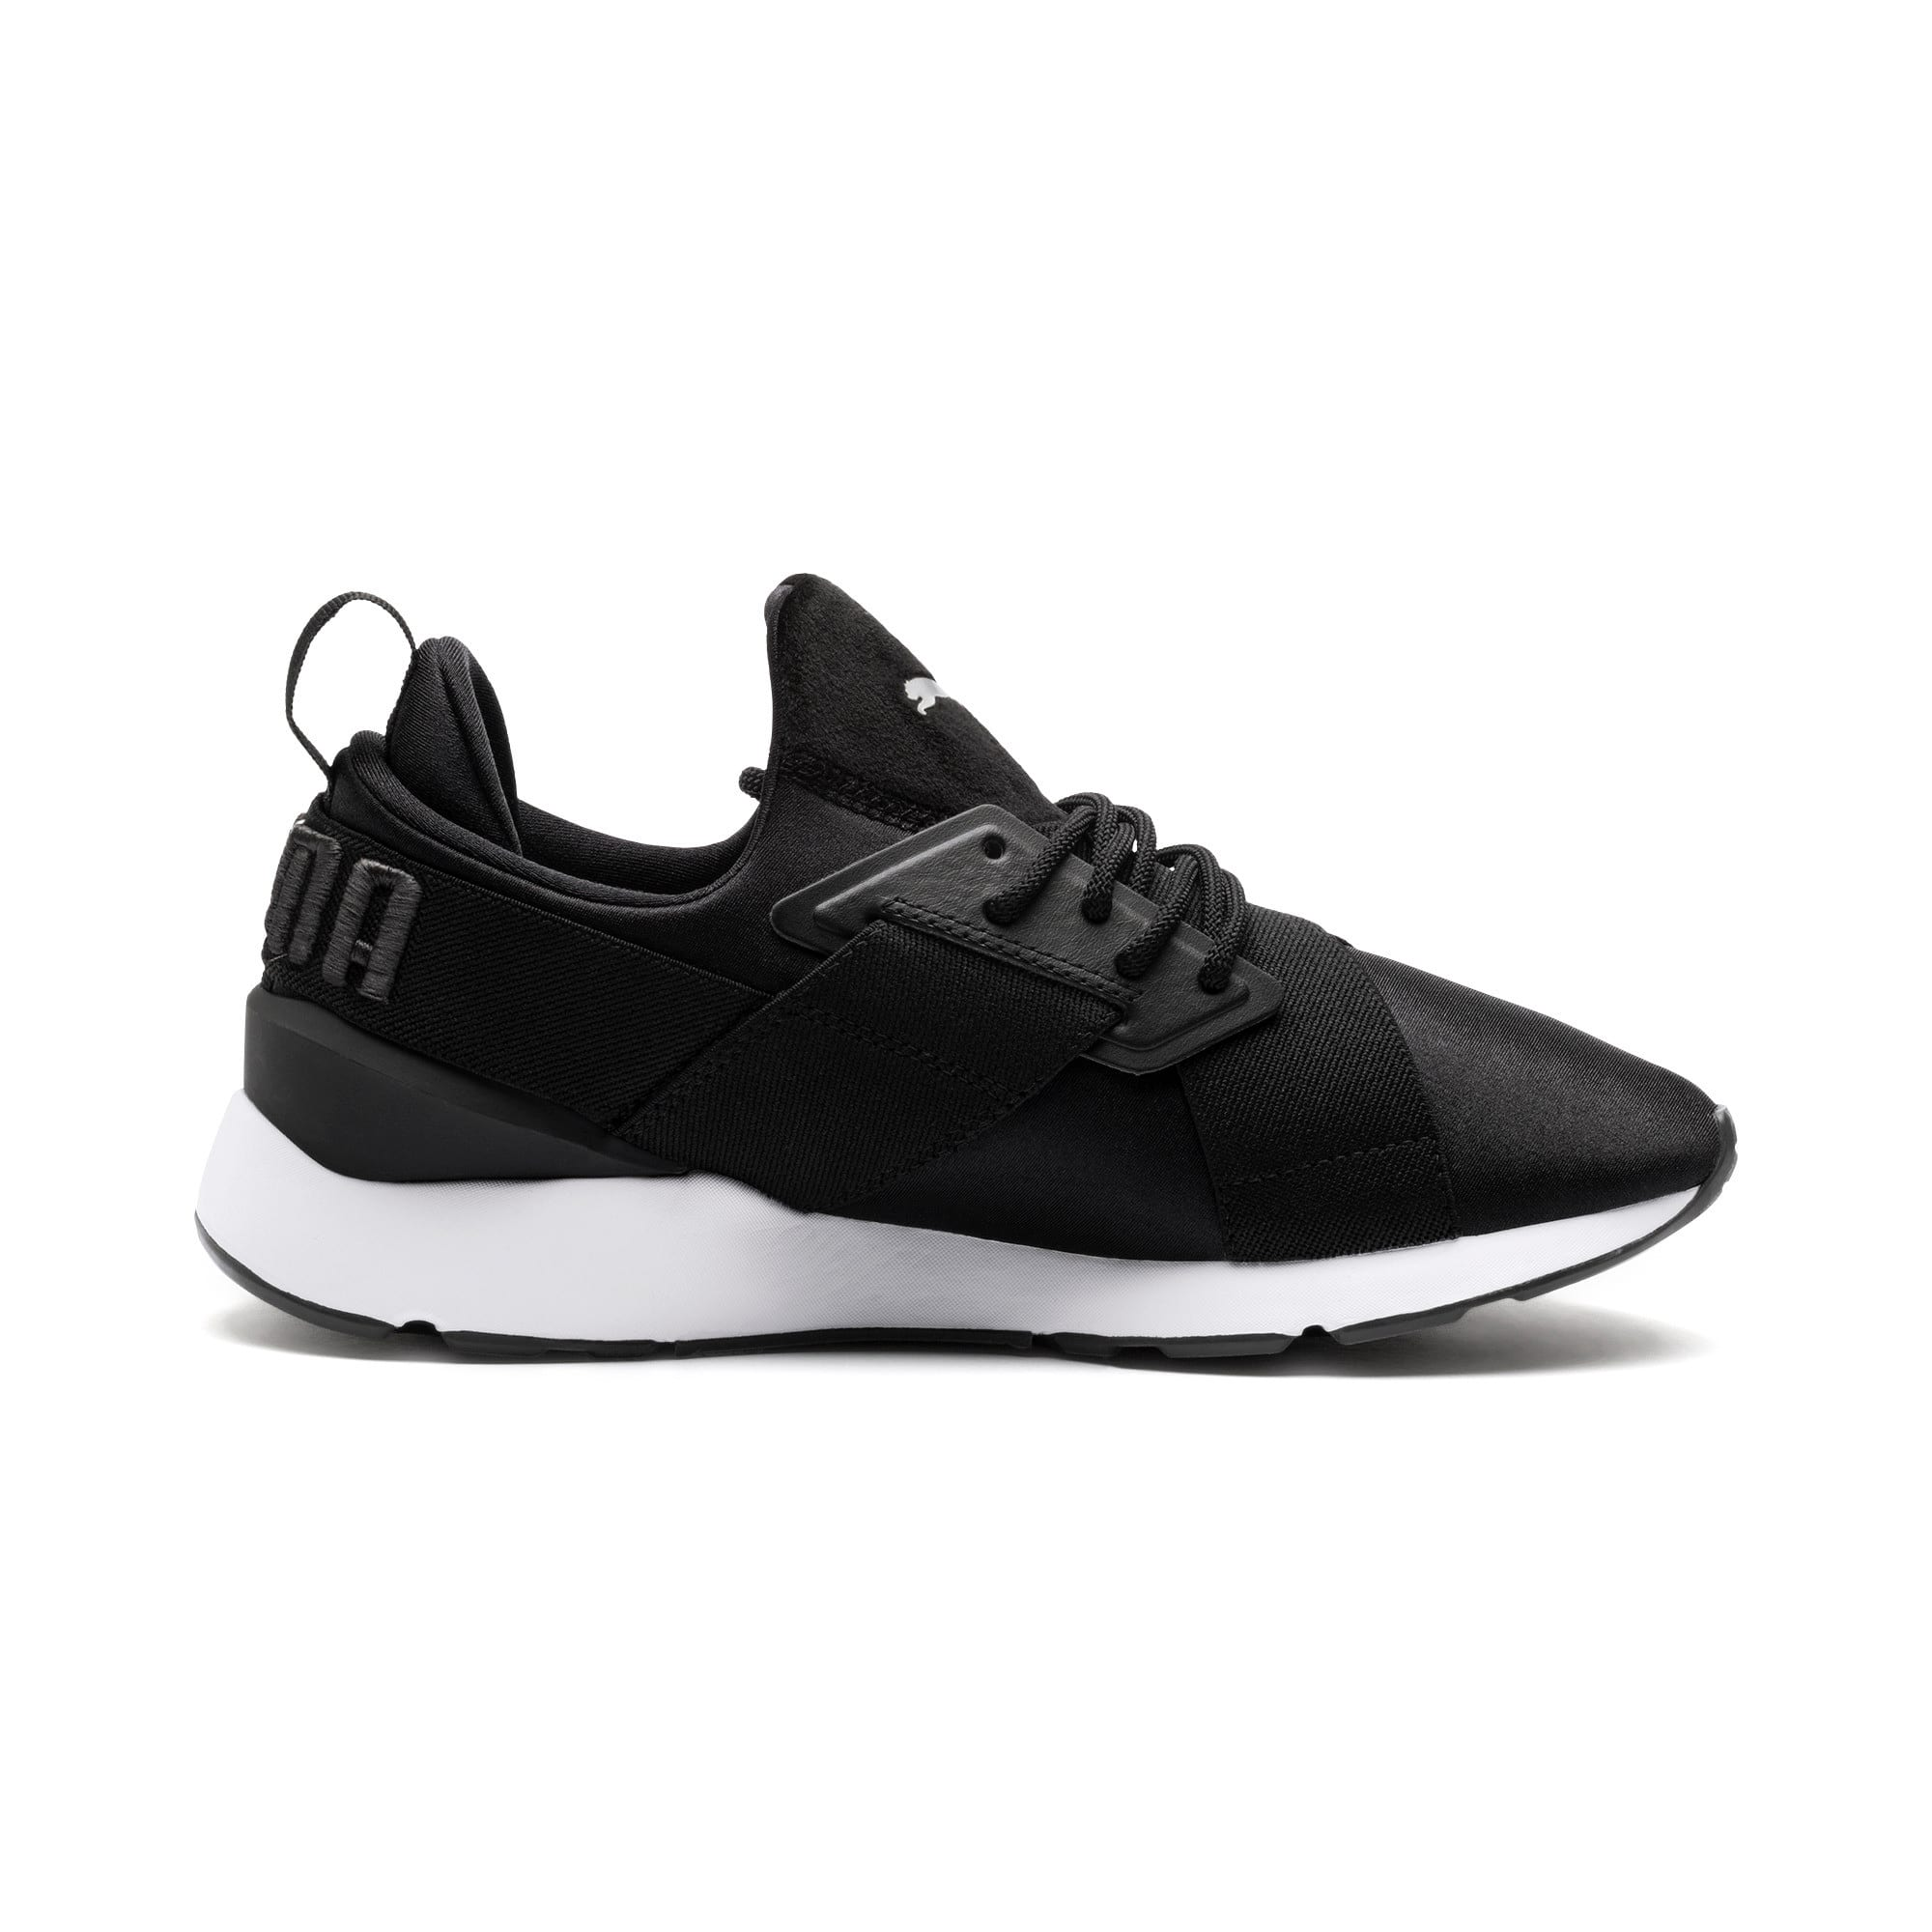 Thumbnail 5 of Muse Satin II Damen Sneaker, Puma Black-Asphalt, medium